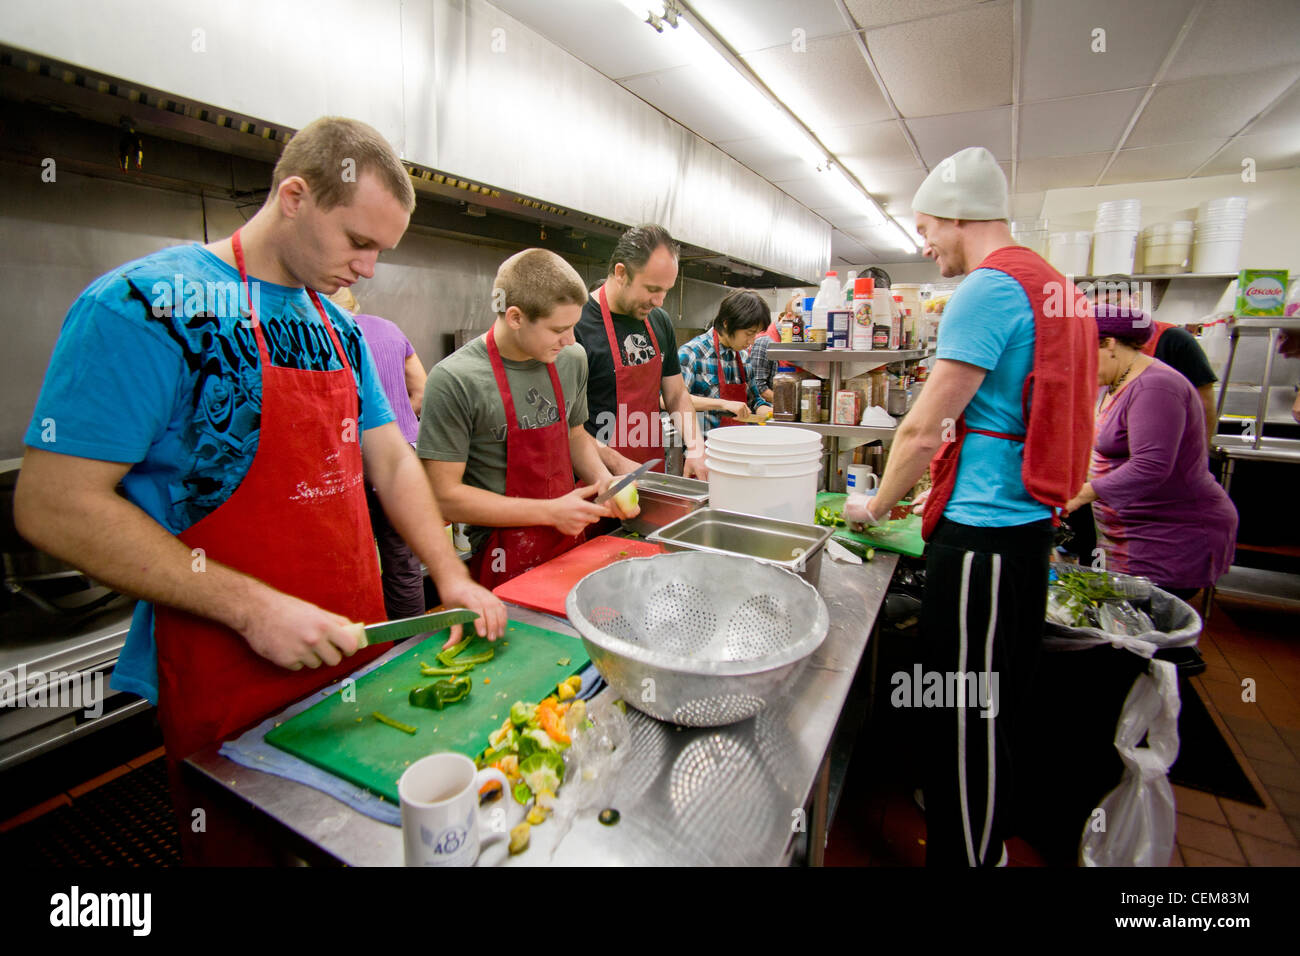 good Soup Kitchen In Costa Mesa #5: Middle class charitable volunteers pitch in at a Costa Mesa, CA, soup kitchen to feed the homeless.